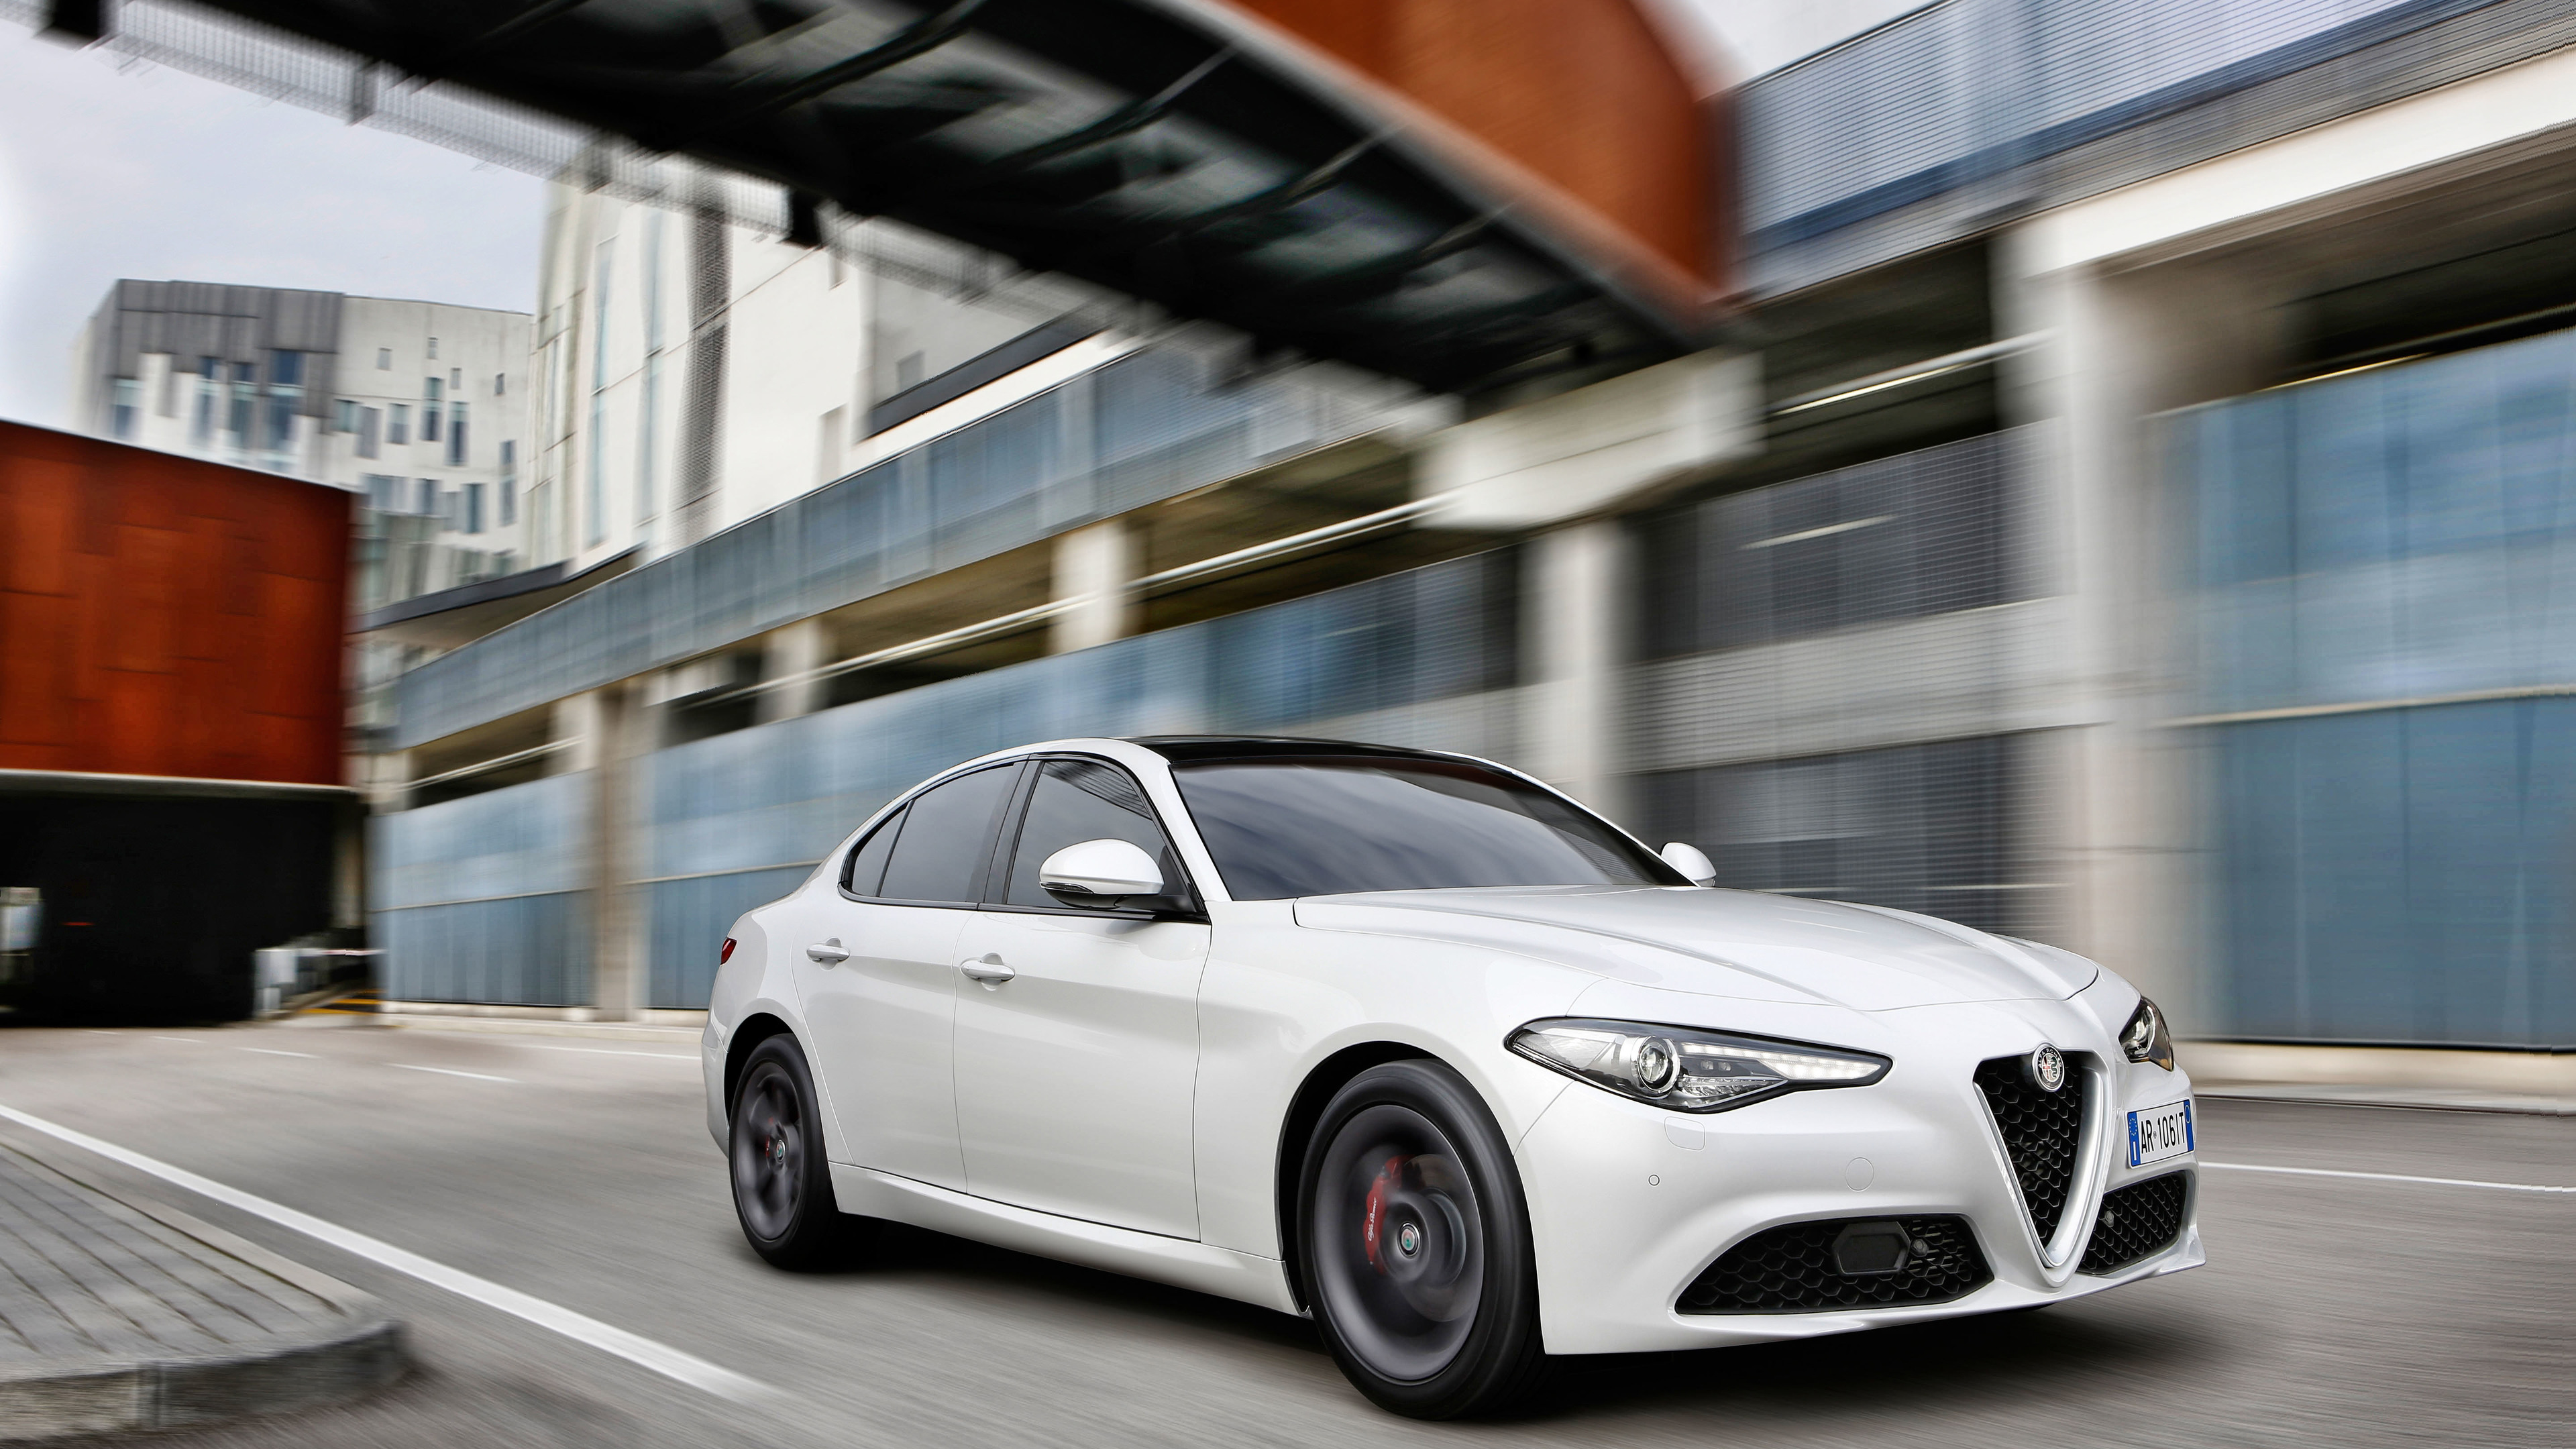 alfa romeo giulia 2 0 1539104576 - Alfa Romeo Giulia 2-0 - cars wallpapers, alfa romeo wallpapers, alfa romeo giulia wallpapers